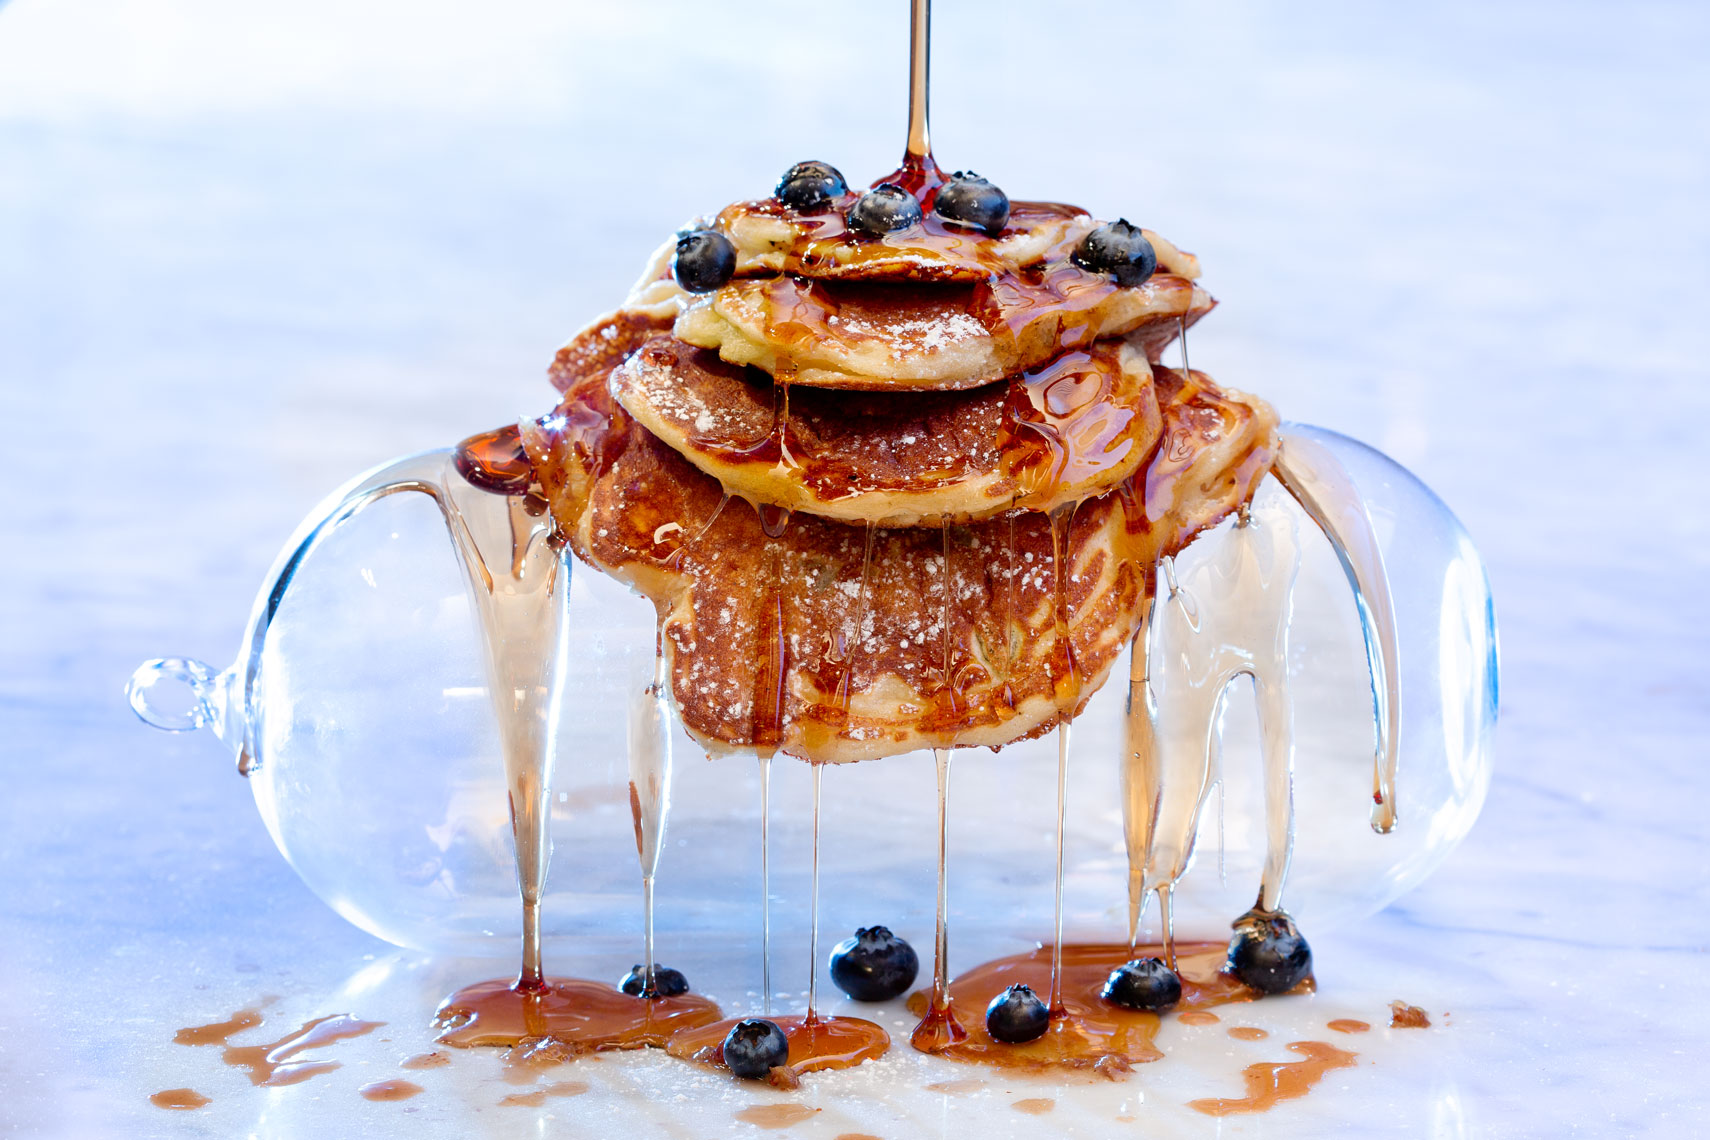 Pancakes and Dripping Syrup